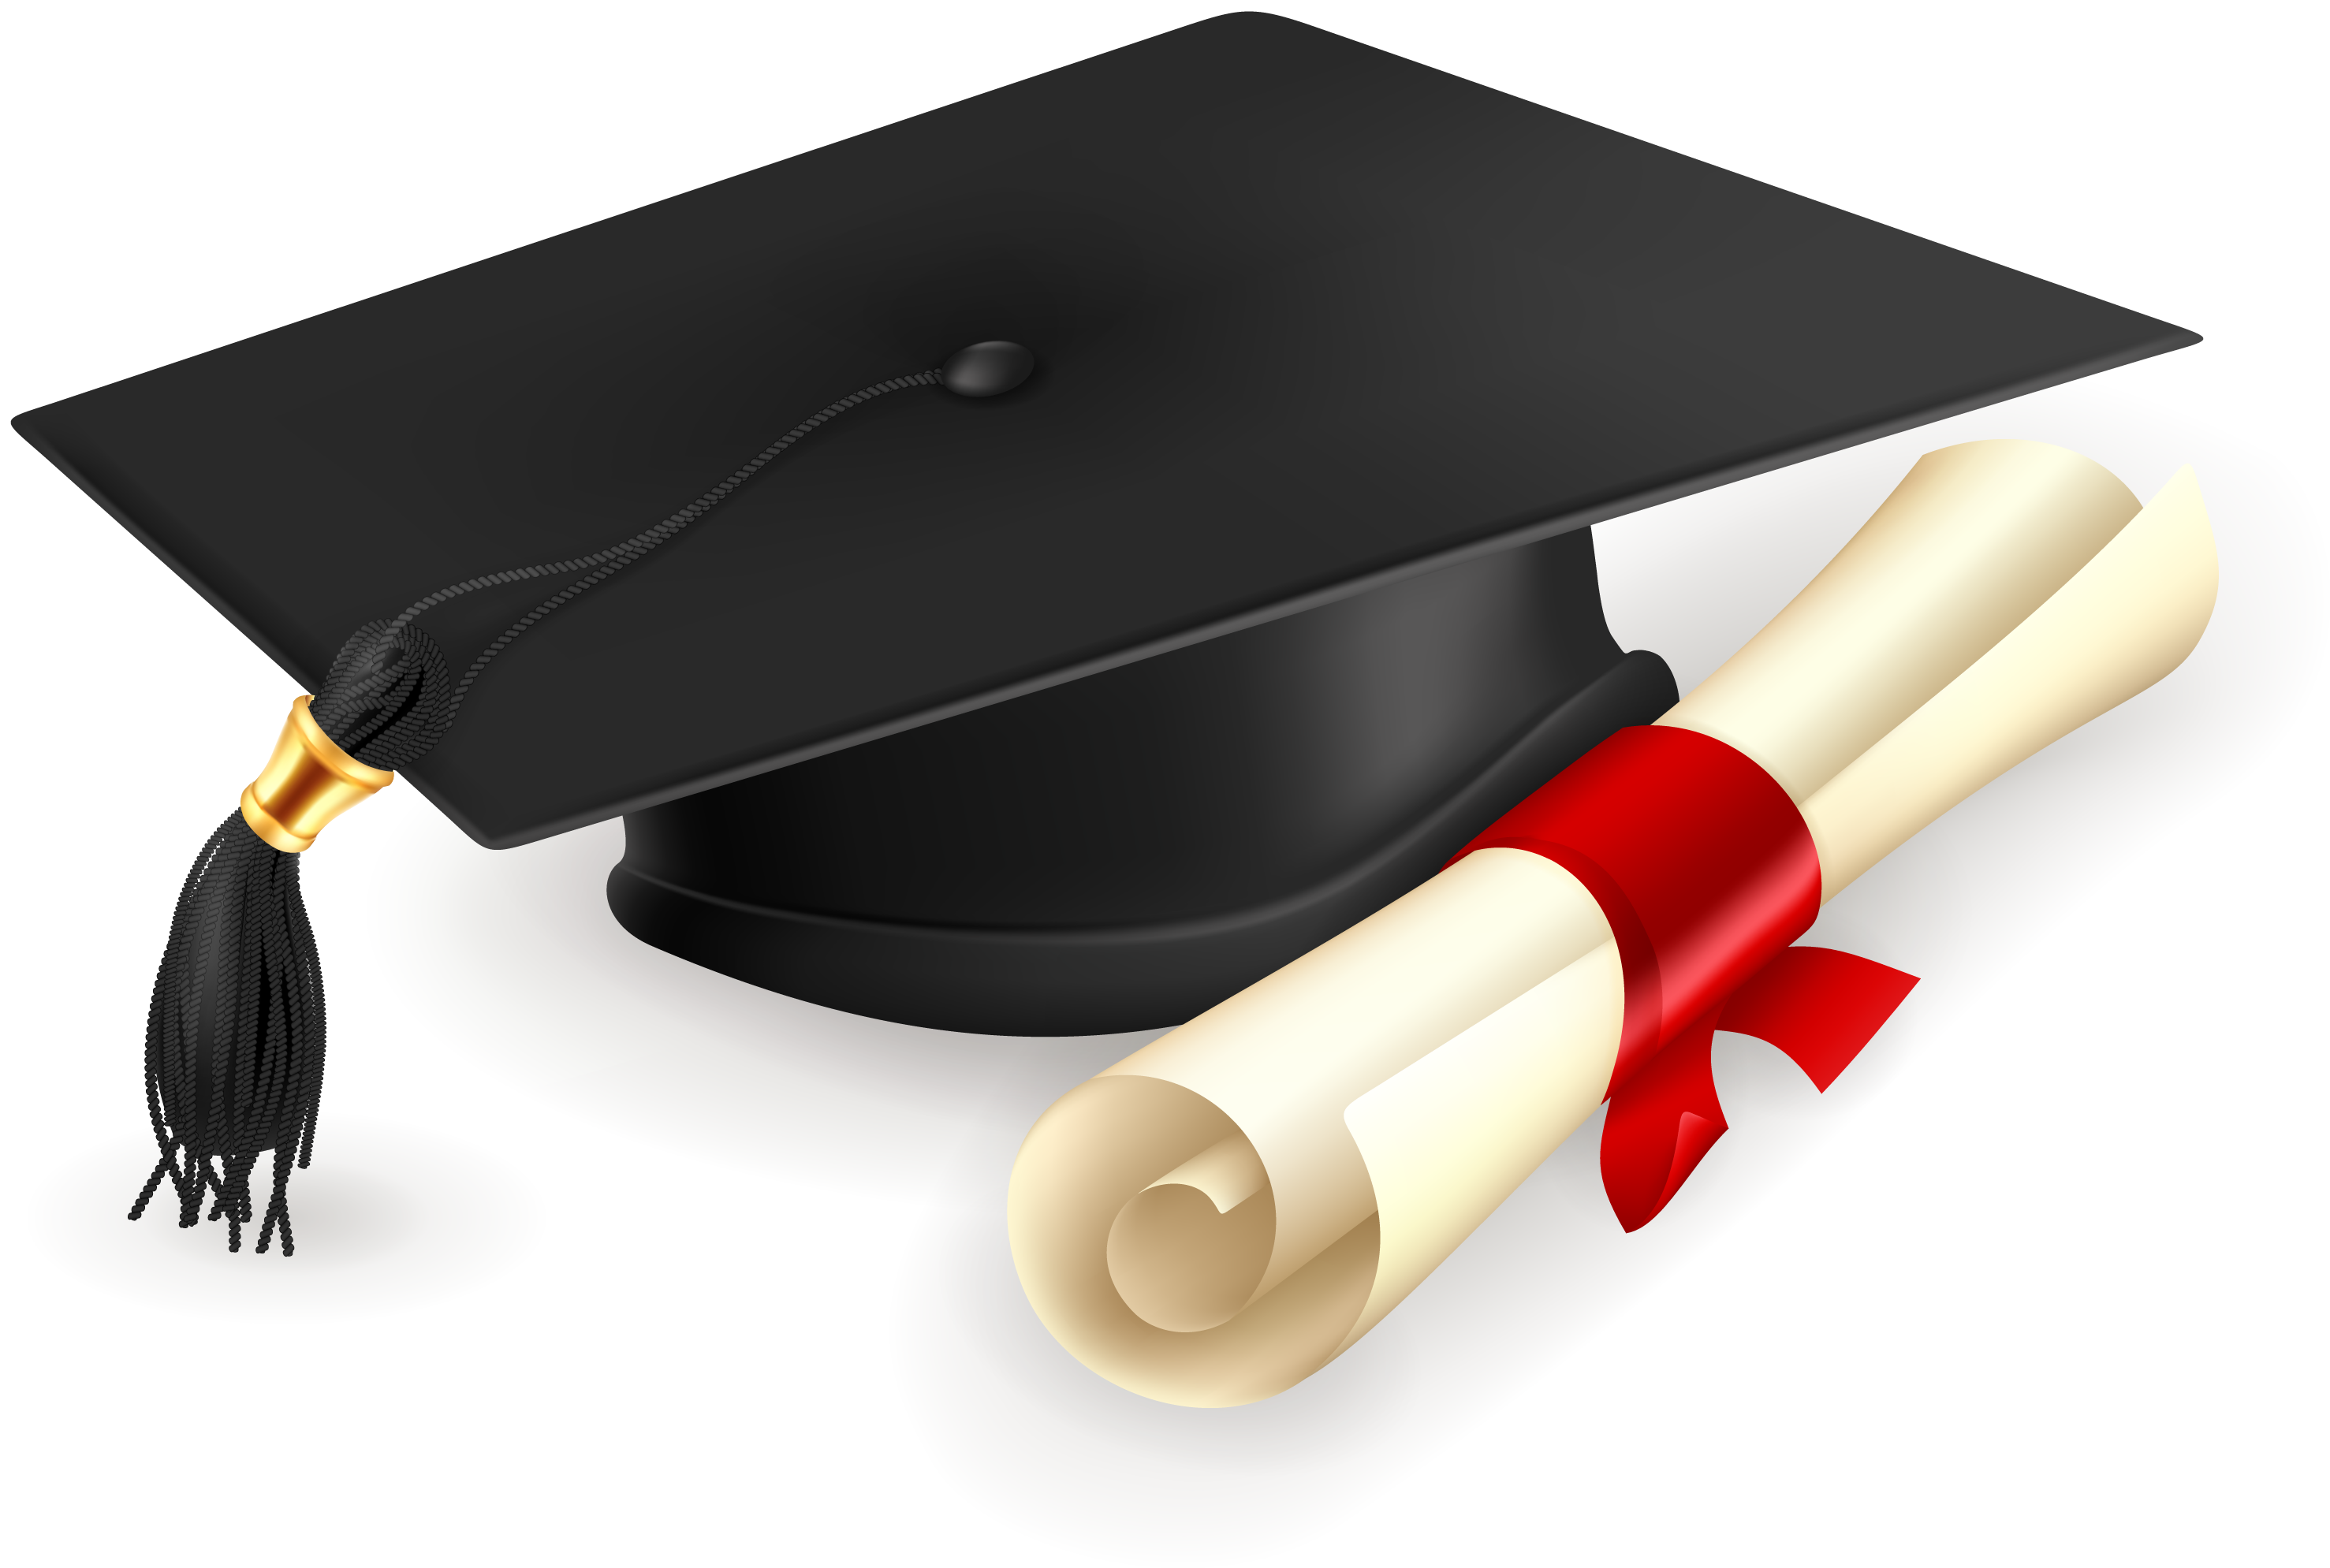 Graduation Caps - Degree Cap PNG